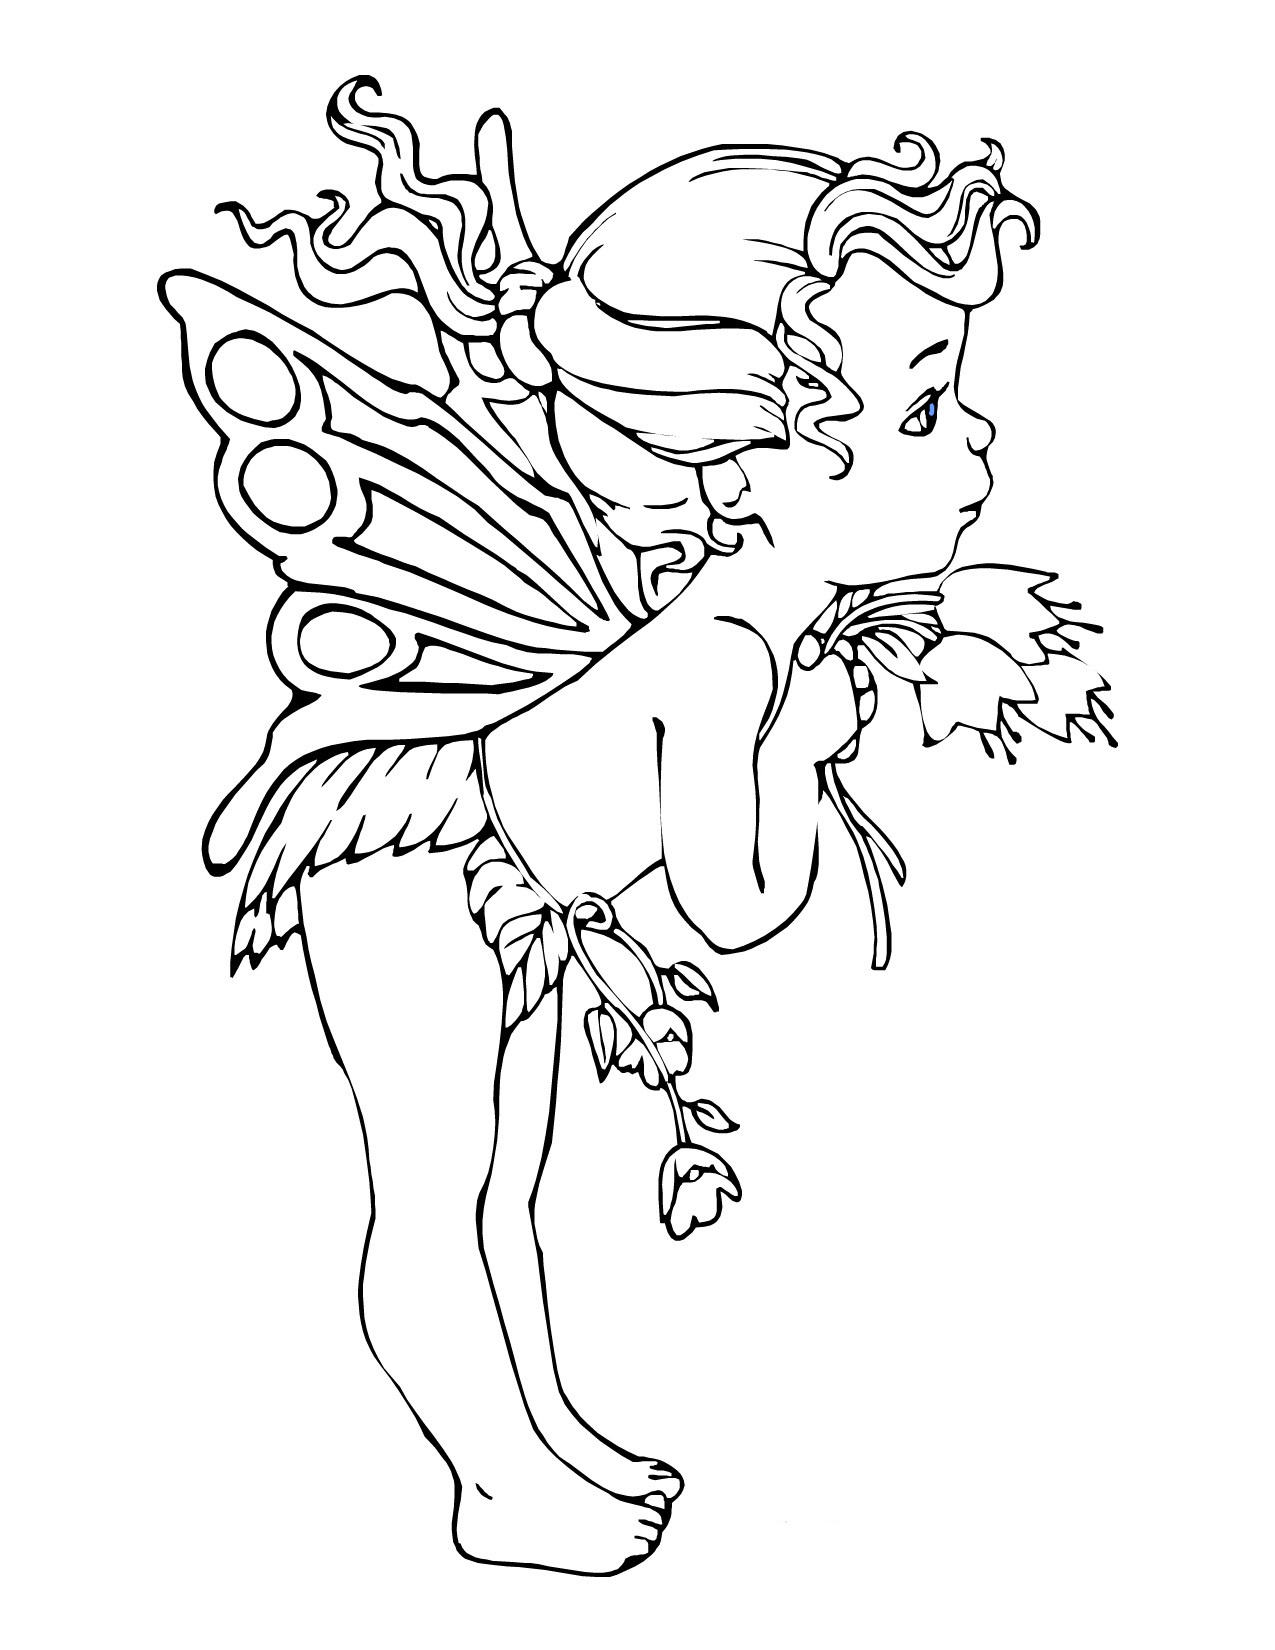 coloring kids pages - photo#25